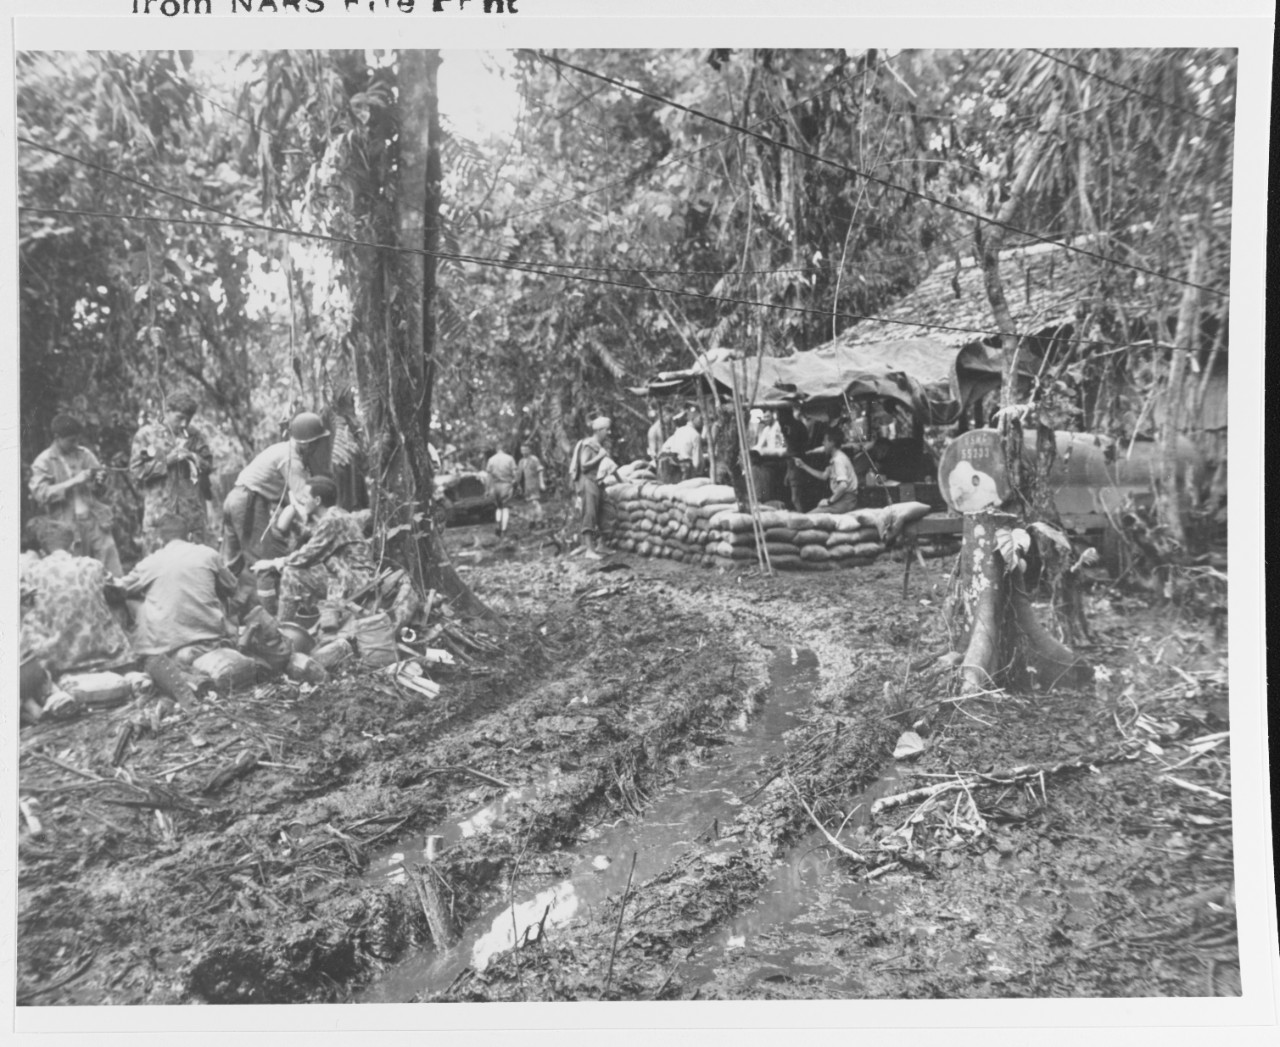 Bougainville Operation, November 1943